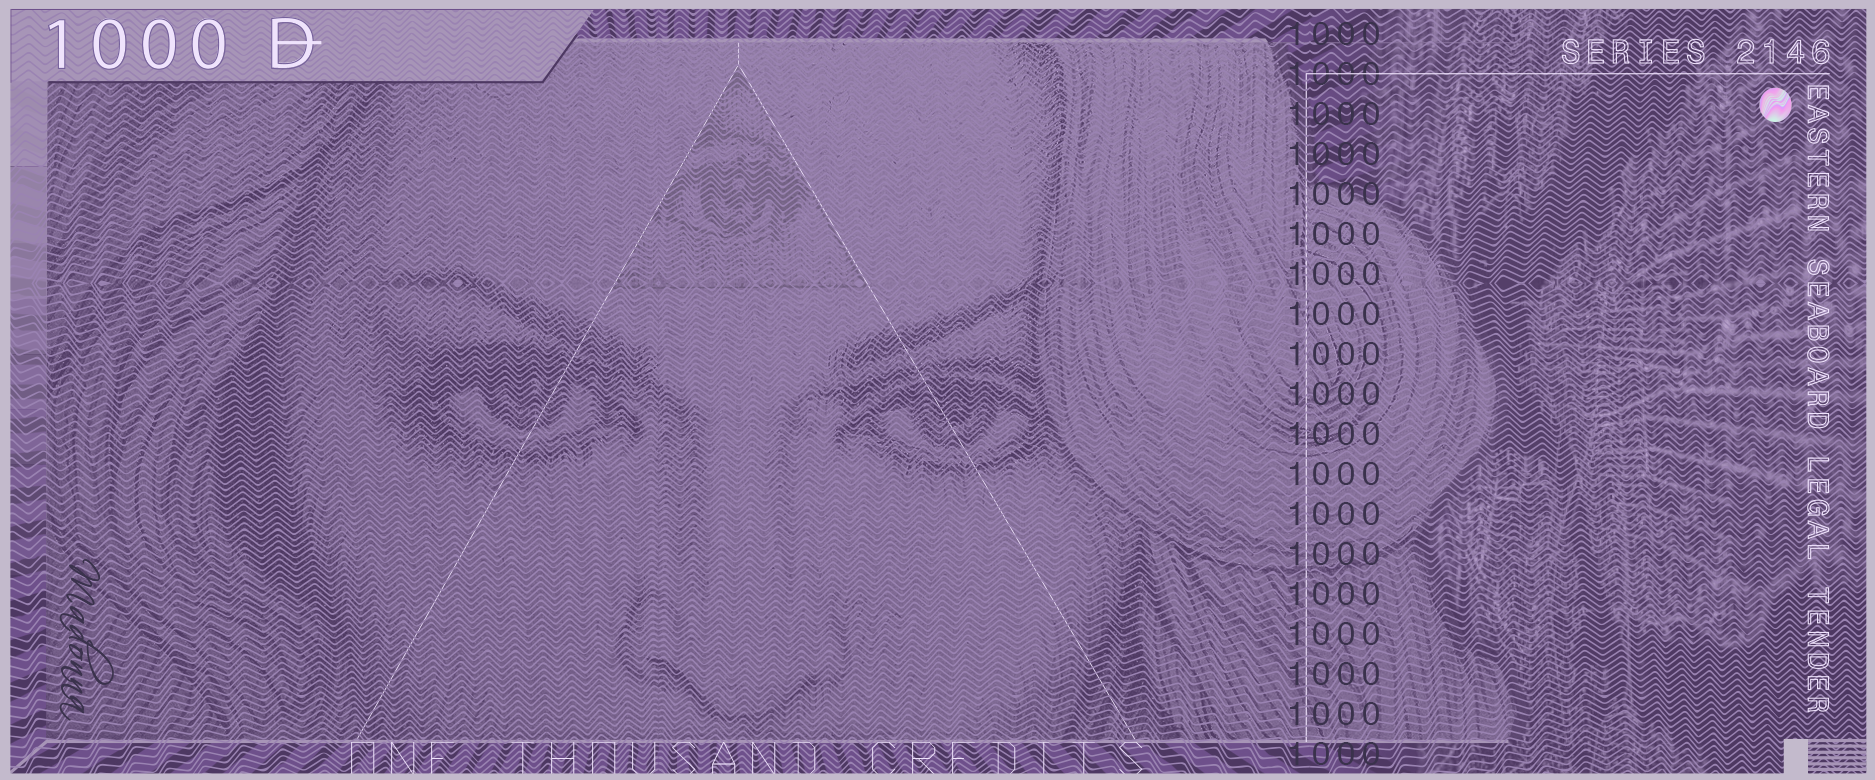 Copy of Front of Madonna 1000 note.